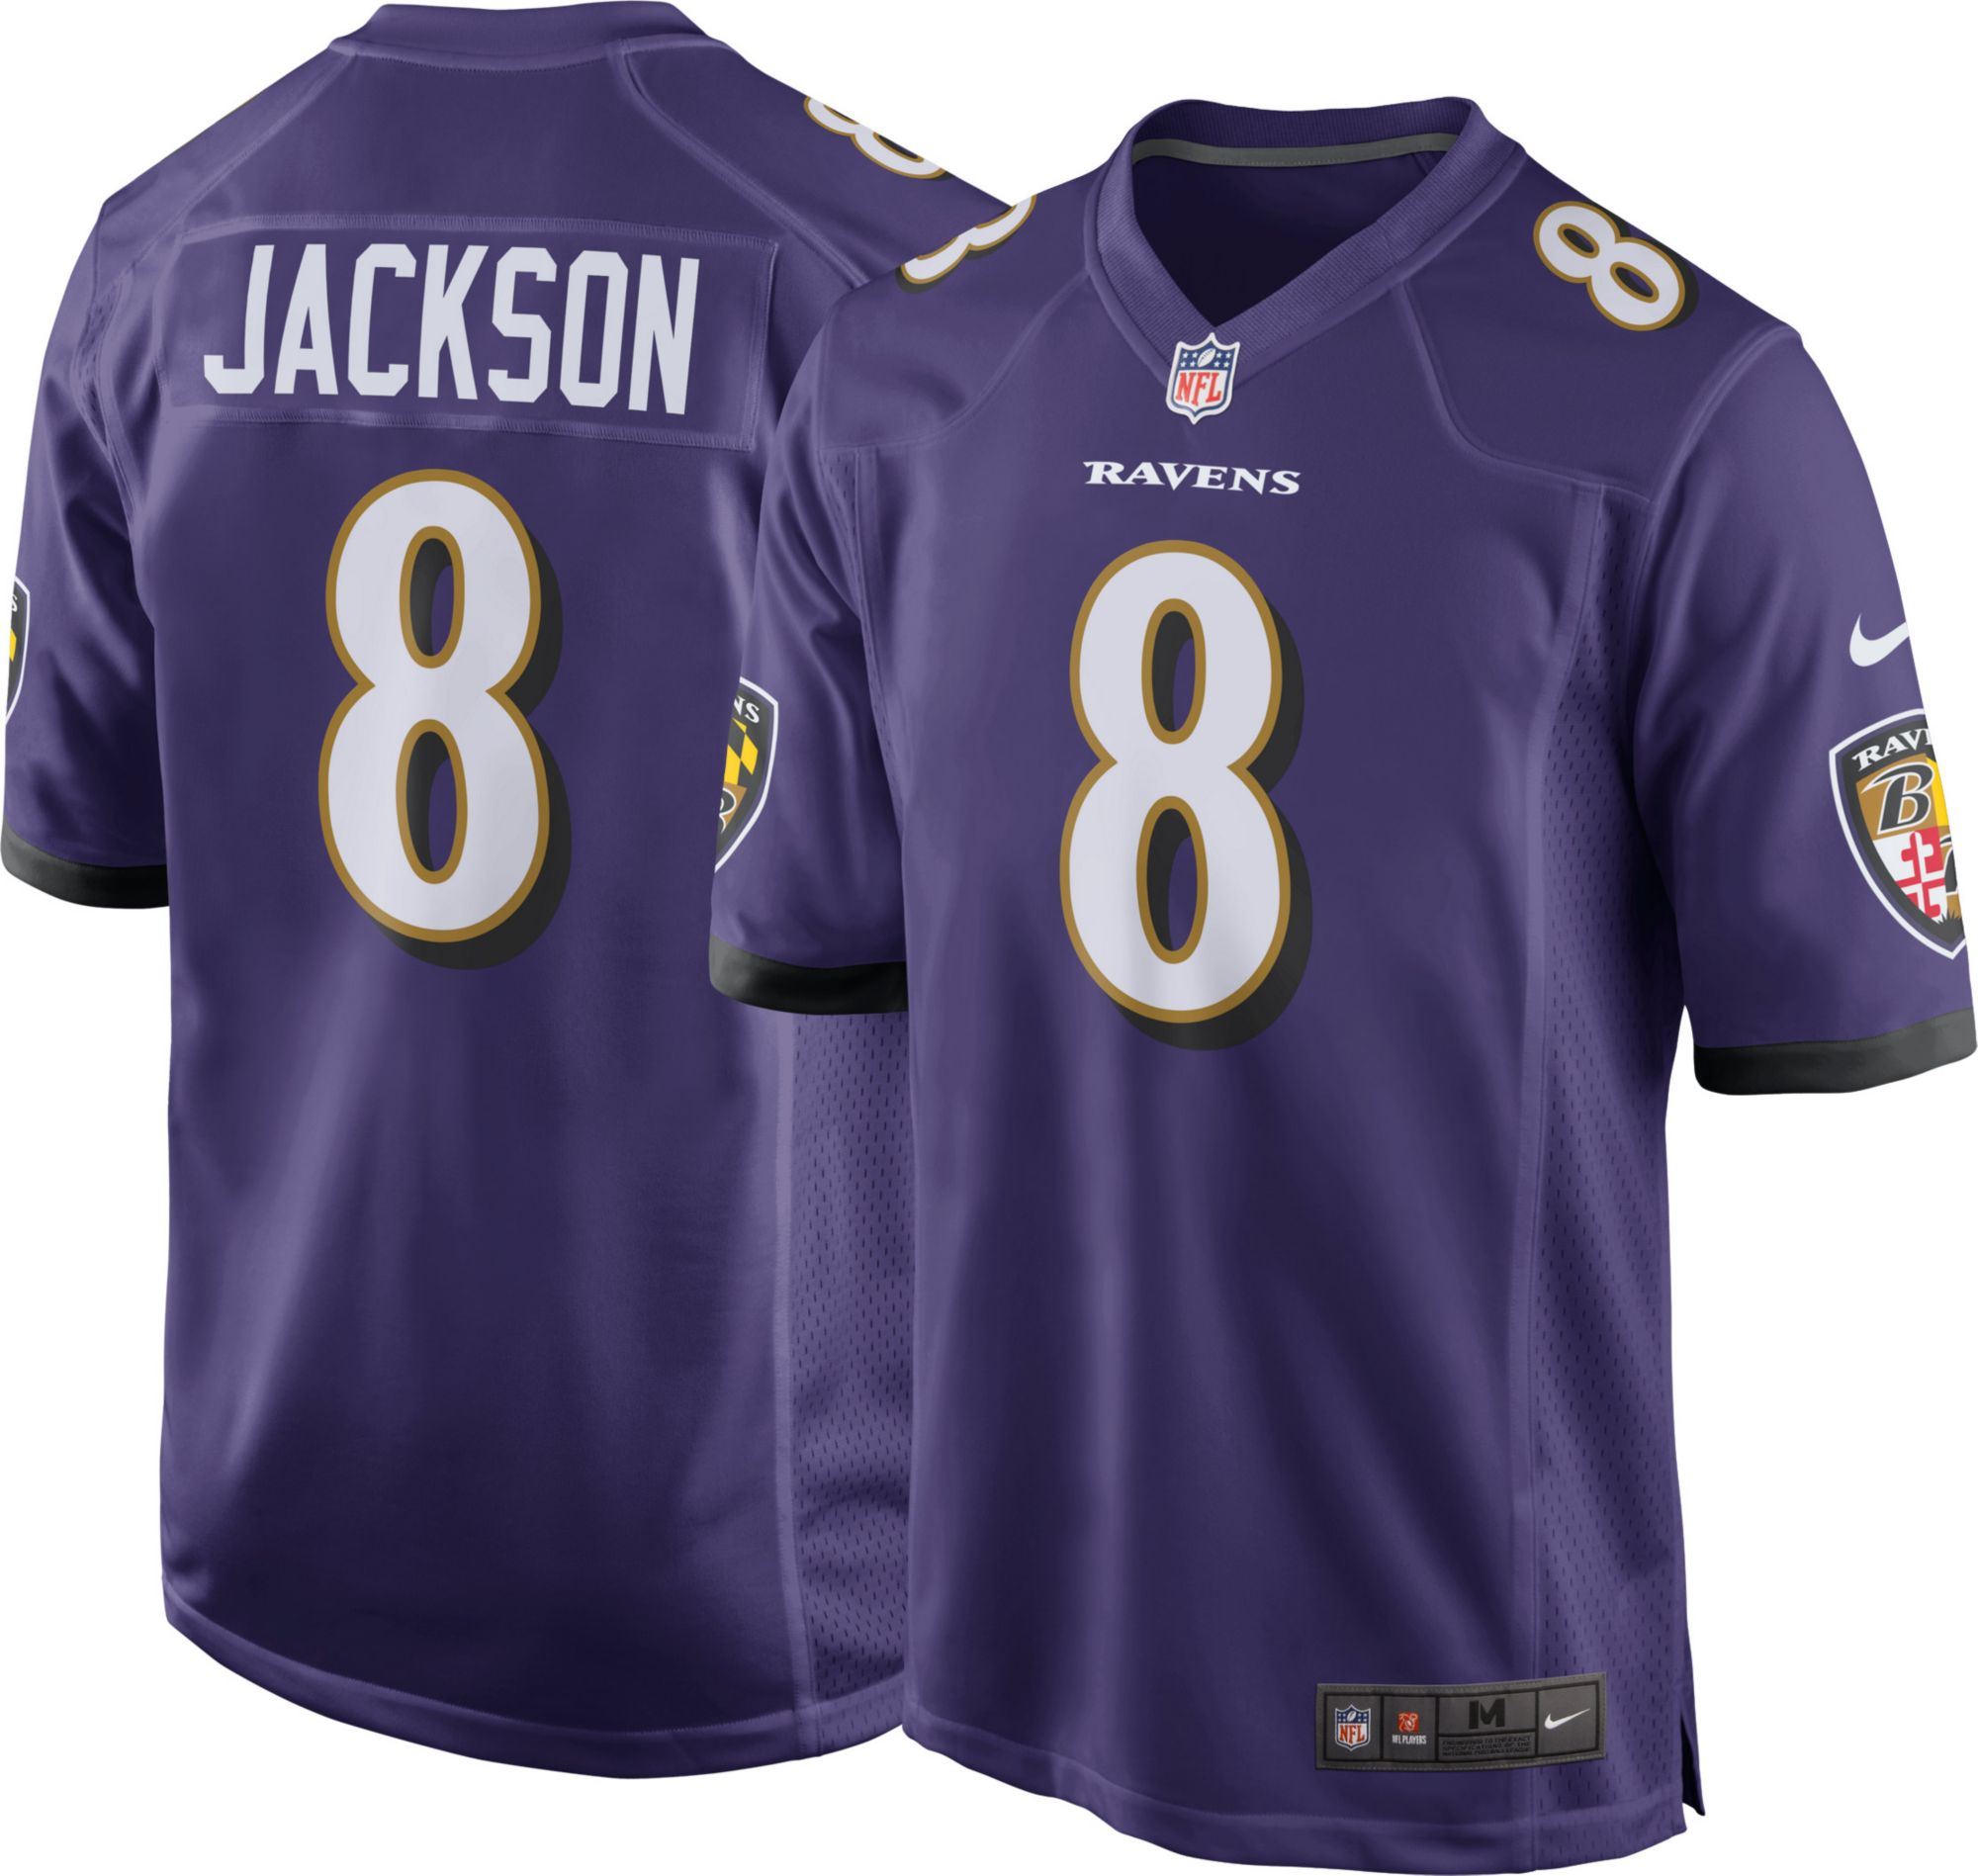 Youth Baltimore Ravens 8 Lamar Jackson Purple Team Color Stitched NFL Nike  Game Jersey Lamar Jackson 8 Nike Mens Baltimore Ravens Home Game Jersey ... 8f5b0192e